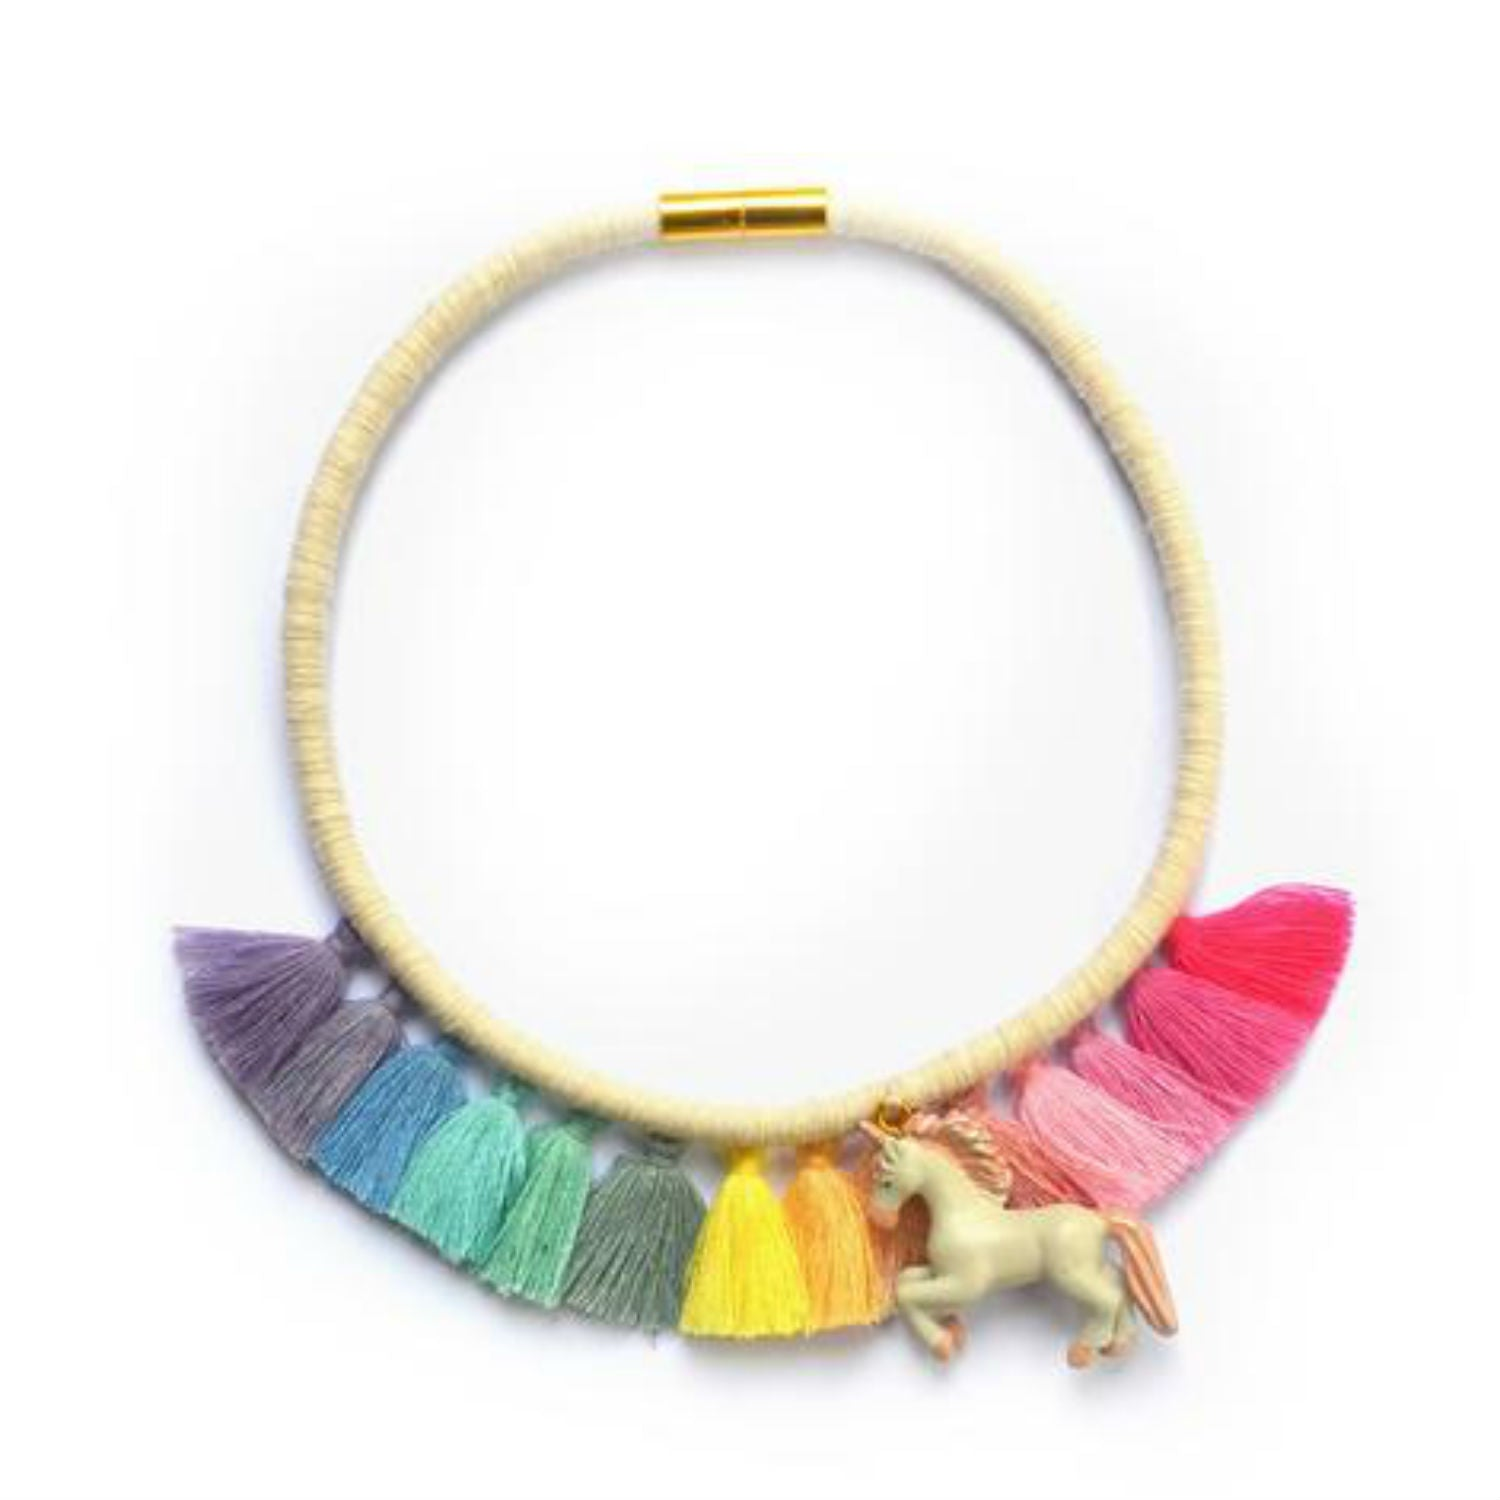 G+F Tassel Necklace - Rainbow